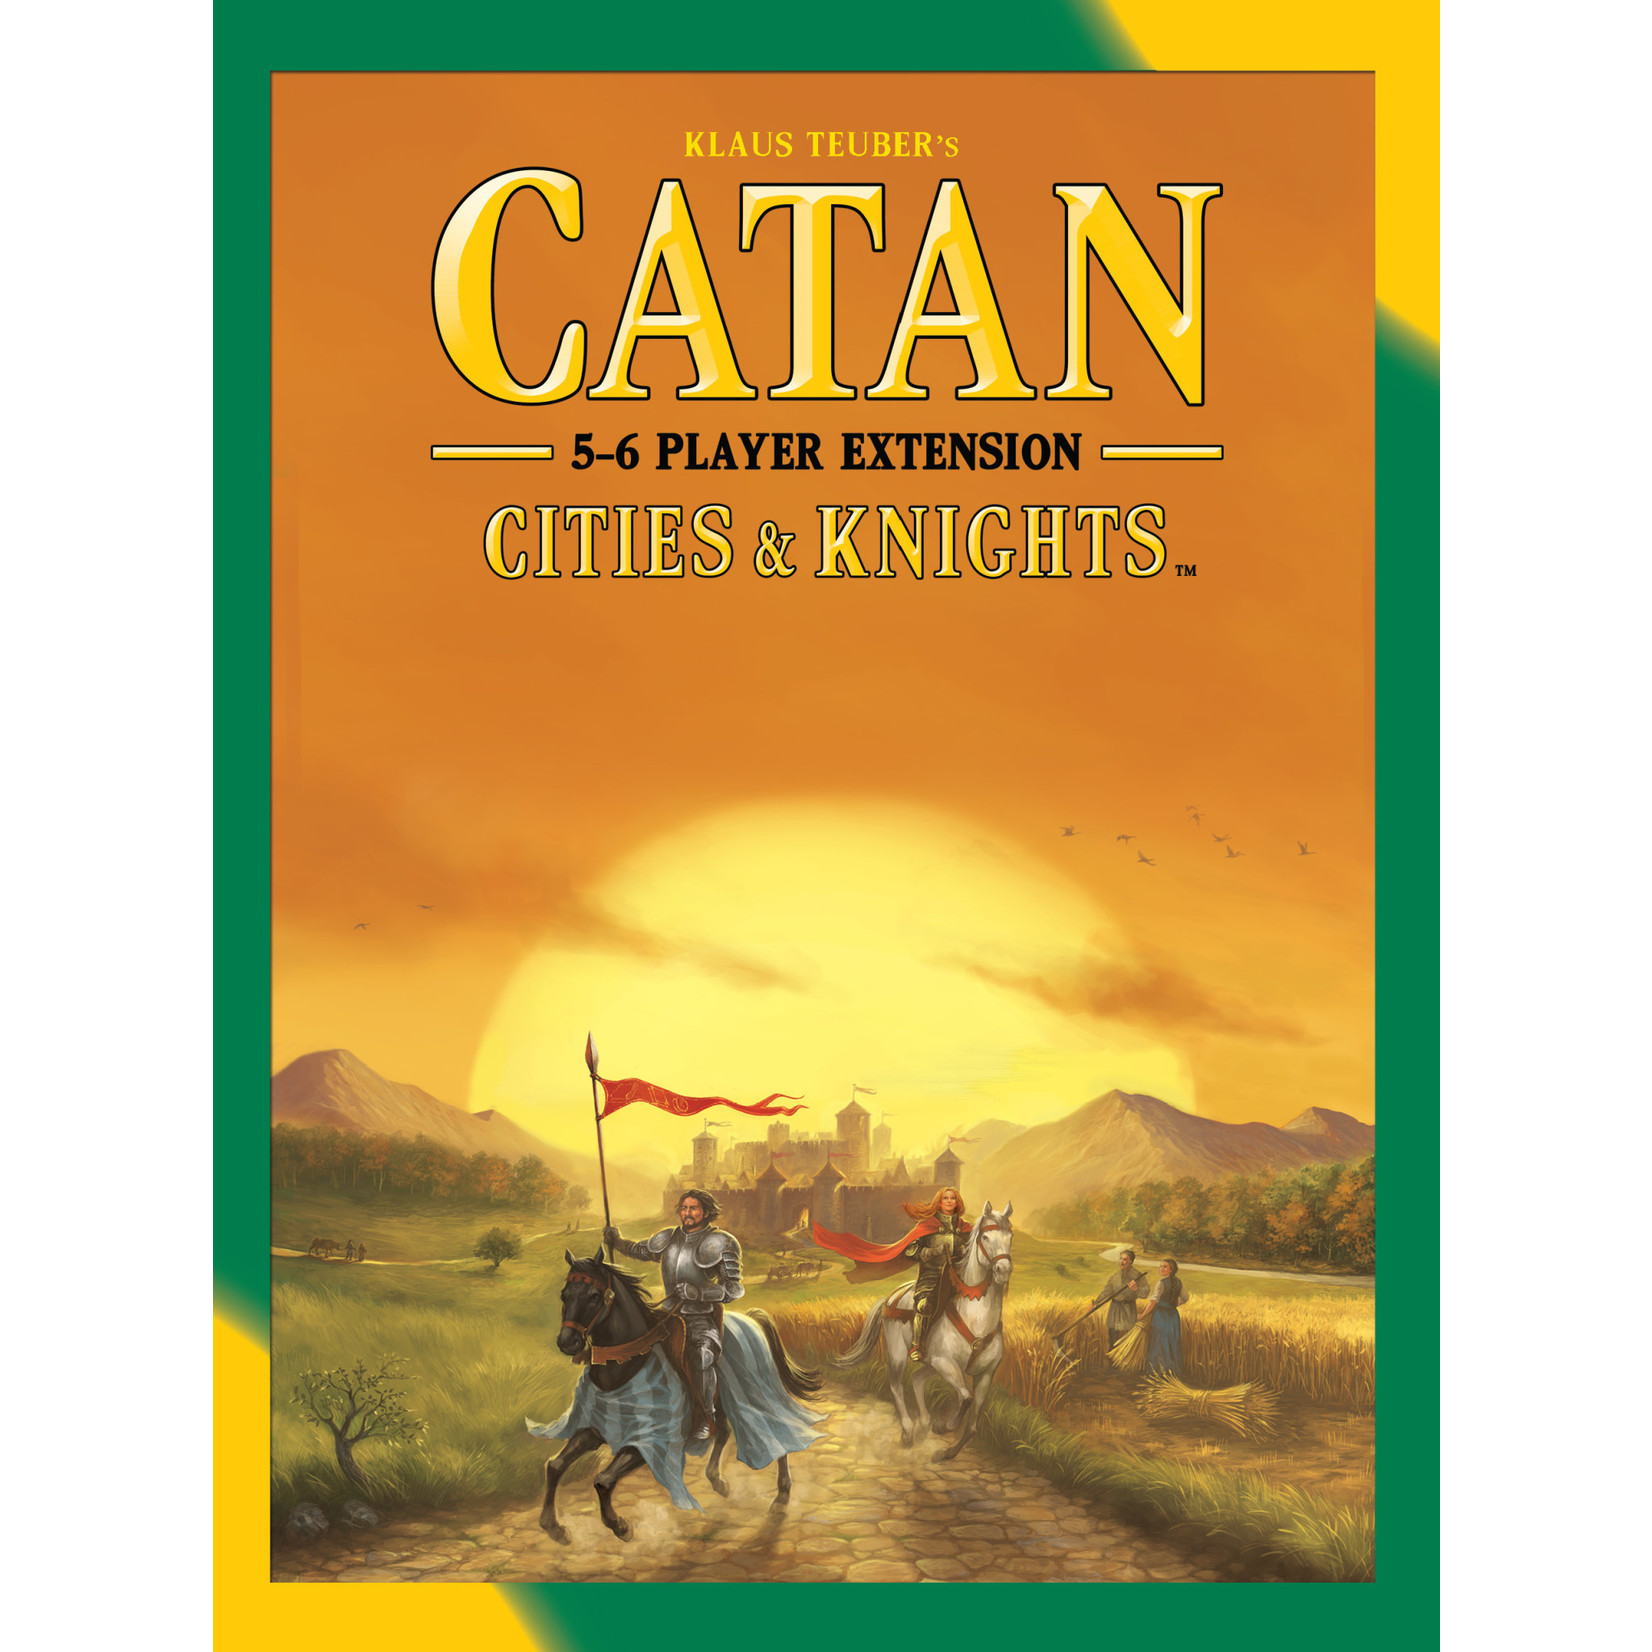 Catan Studio Catan Cities and Knights 5-6 Player Extension